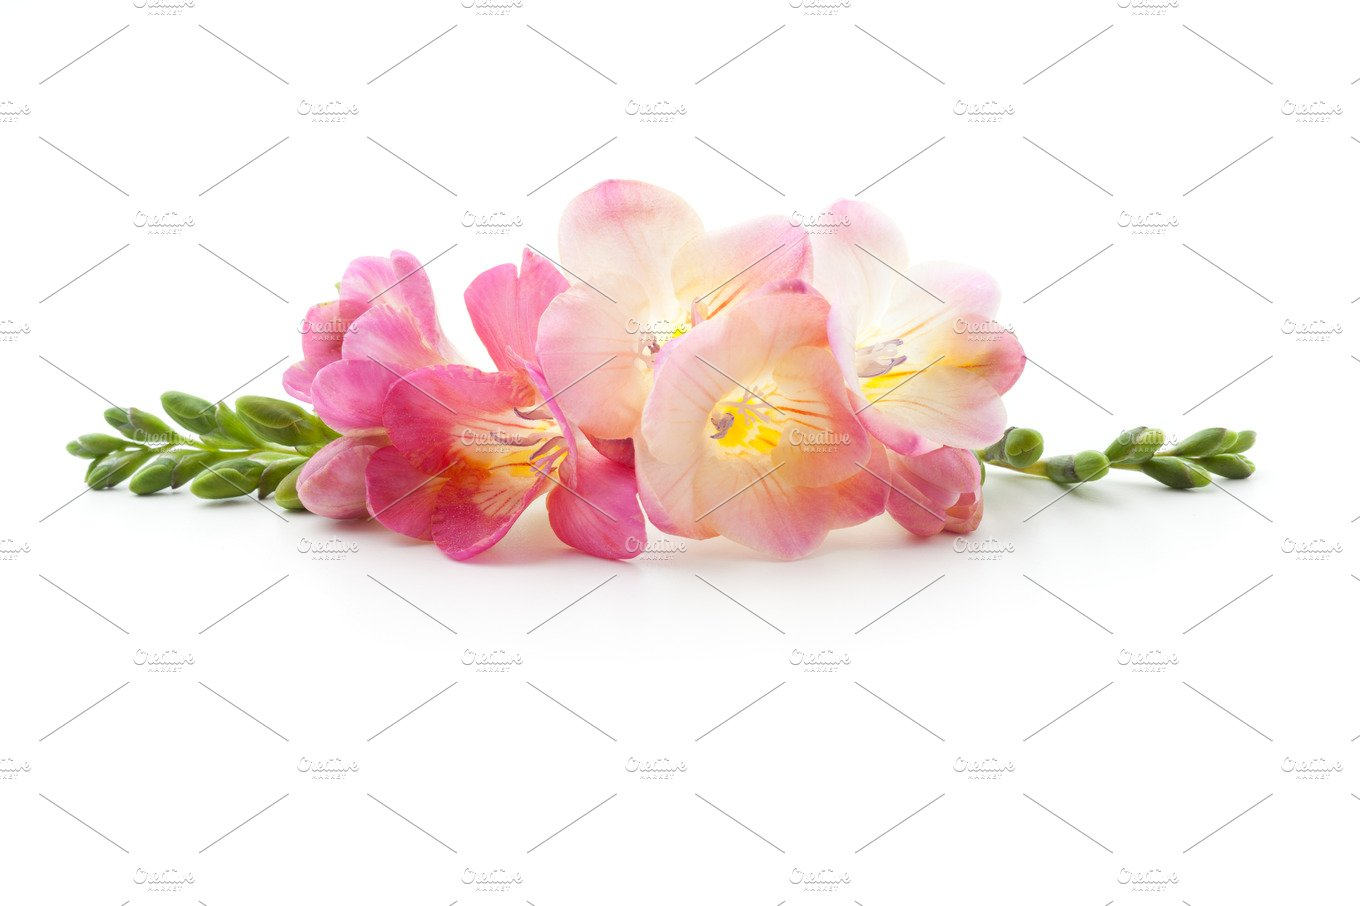 Freesia flowers lying down photos creative market mightylinksfo